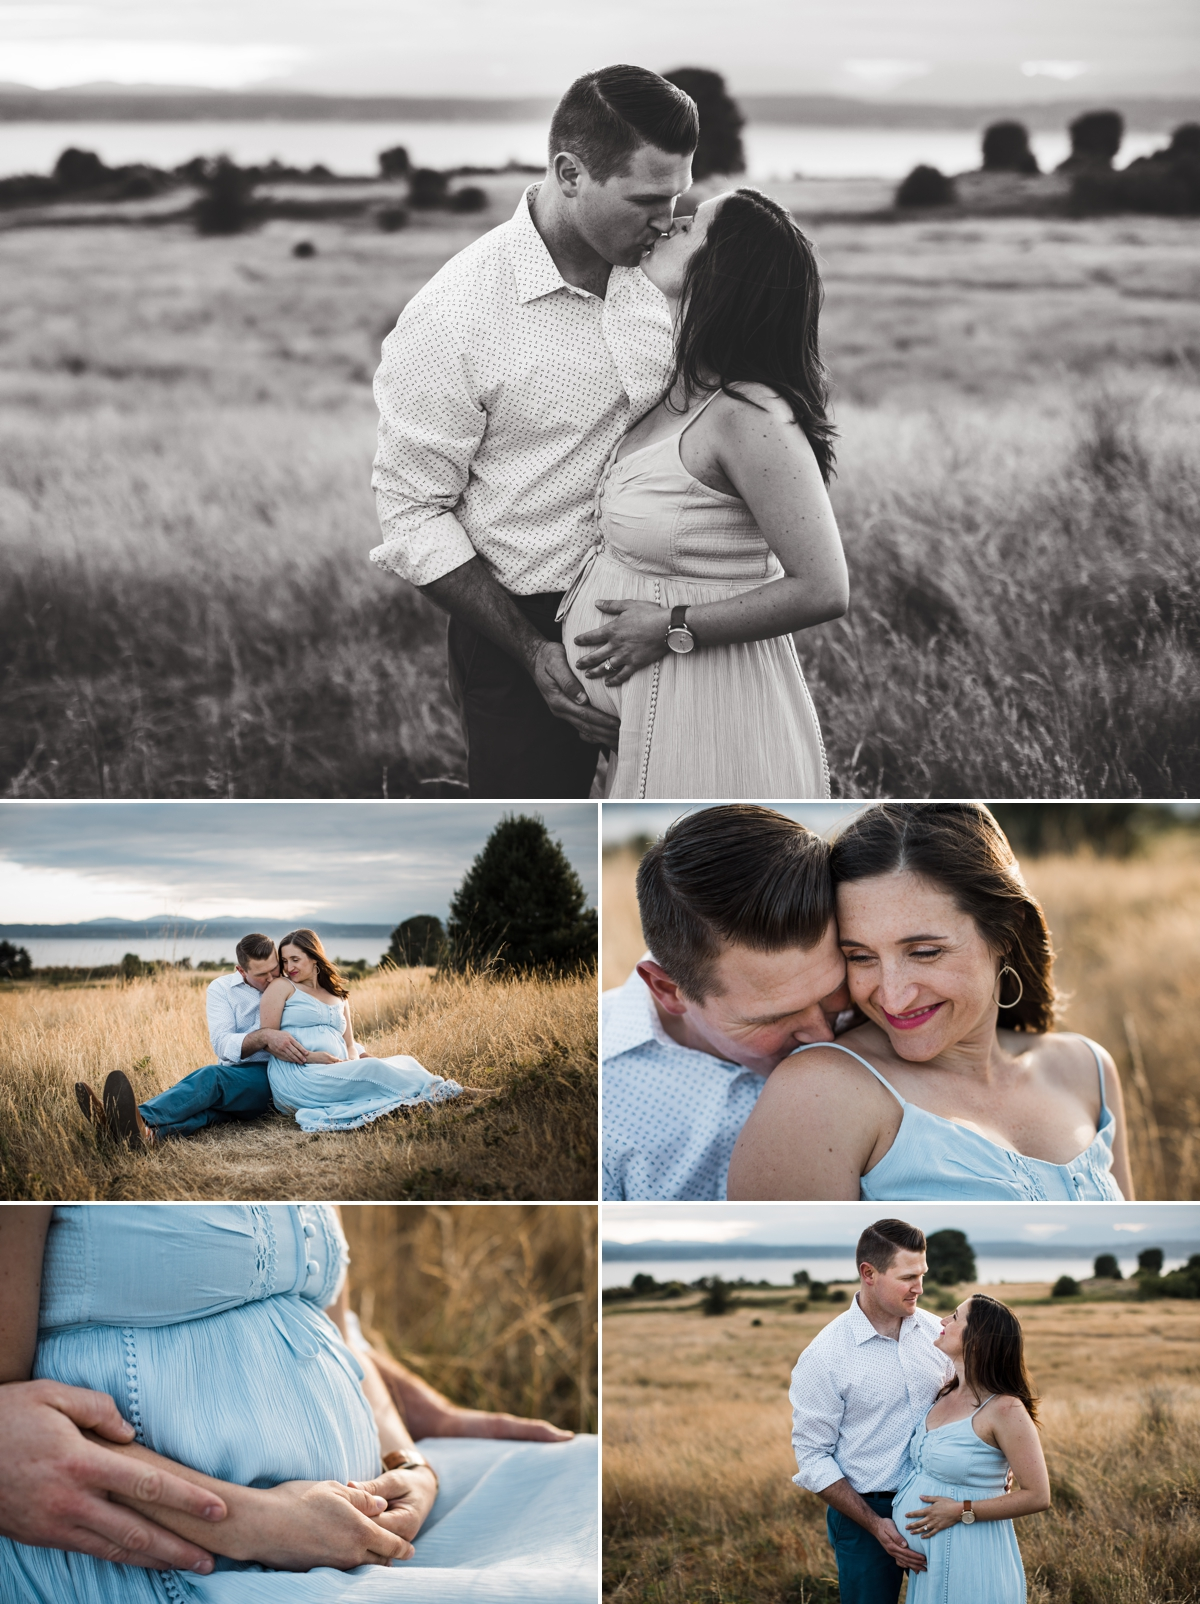 seattle maternity photographer  connected lifestyle maternity photography elena s blair 4.jpg